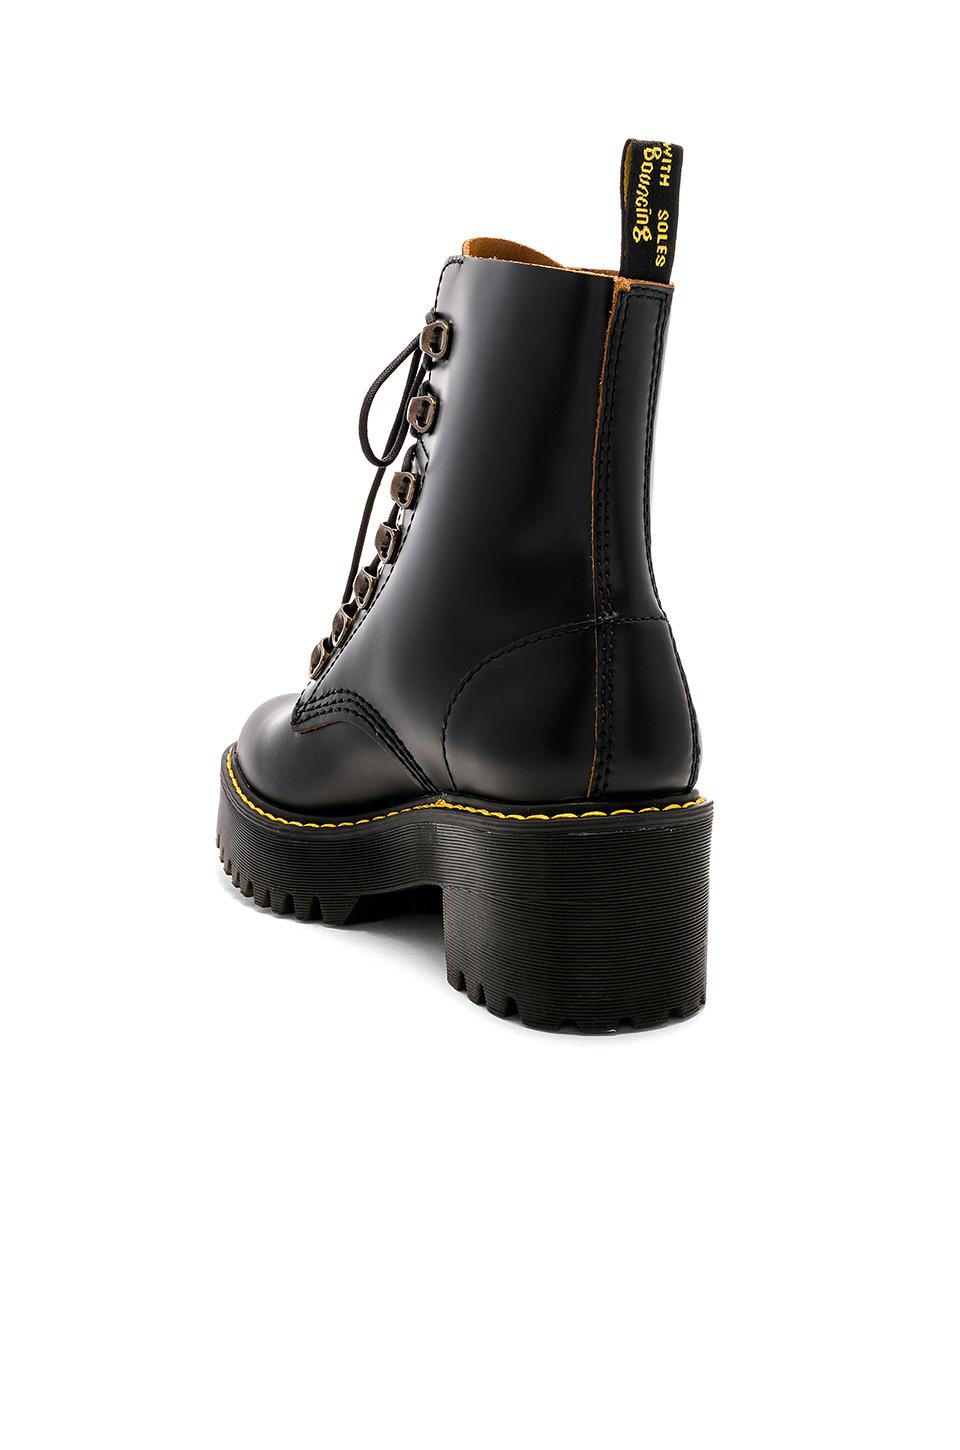 1f33c811592 Dr. Martens Leona Boot in Black - Lyst